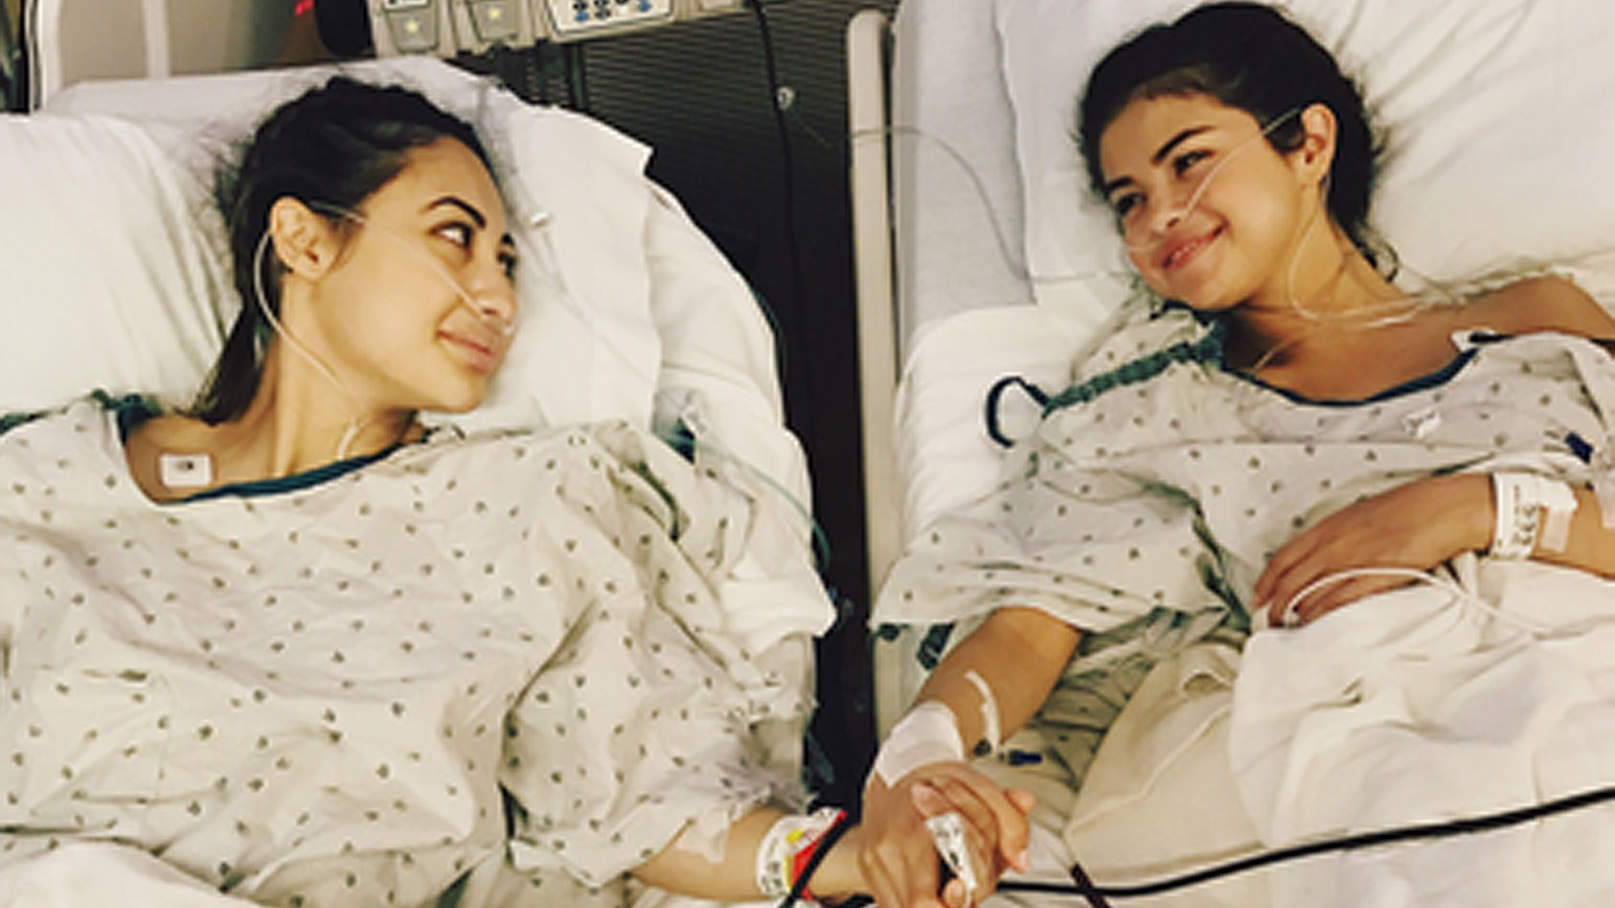 Selena Gomez Reveals She Is Recovering from a Kidney Transplant – and Her Best Friend Was the Donor!